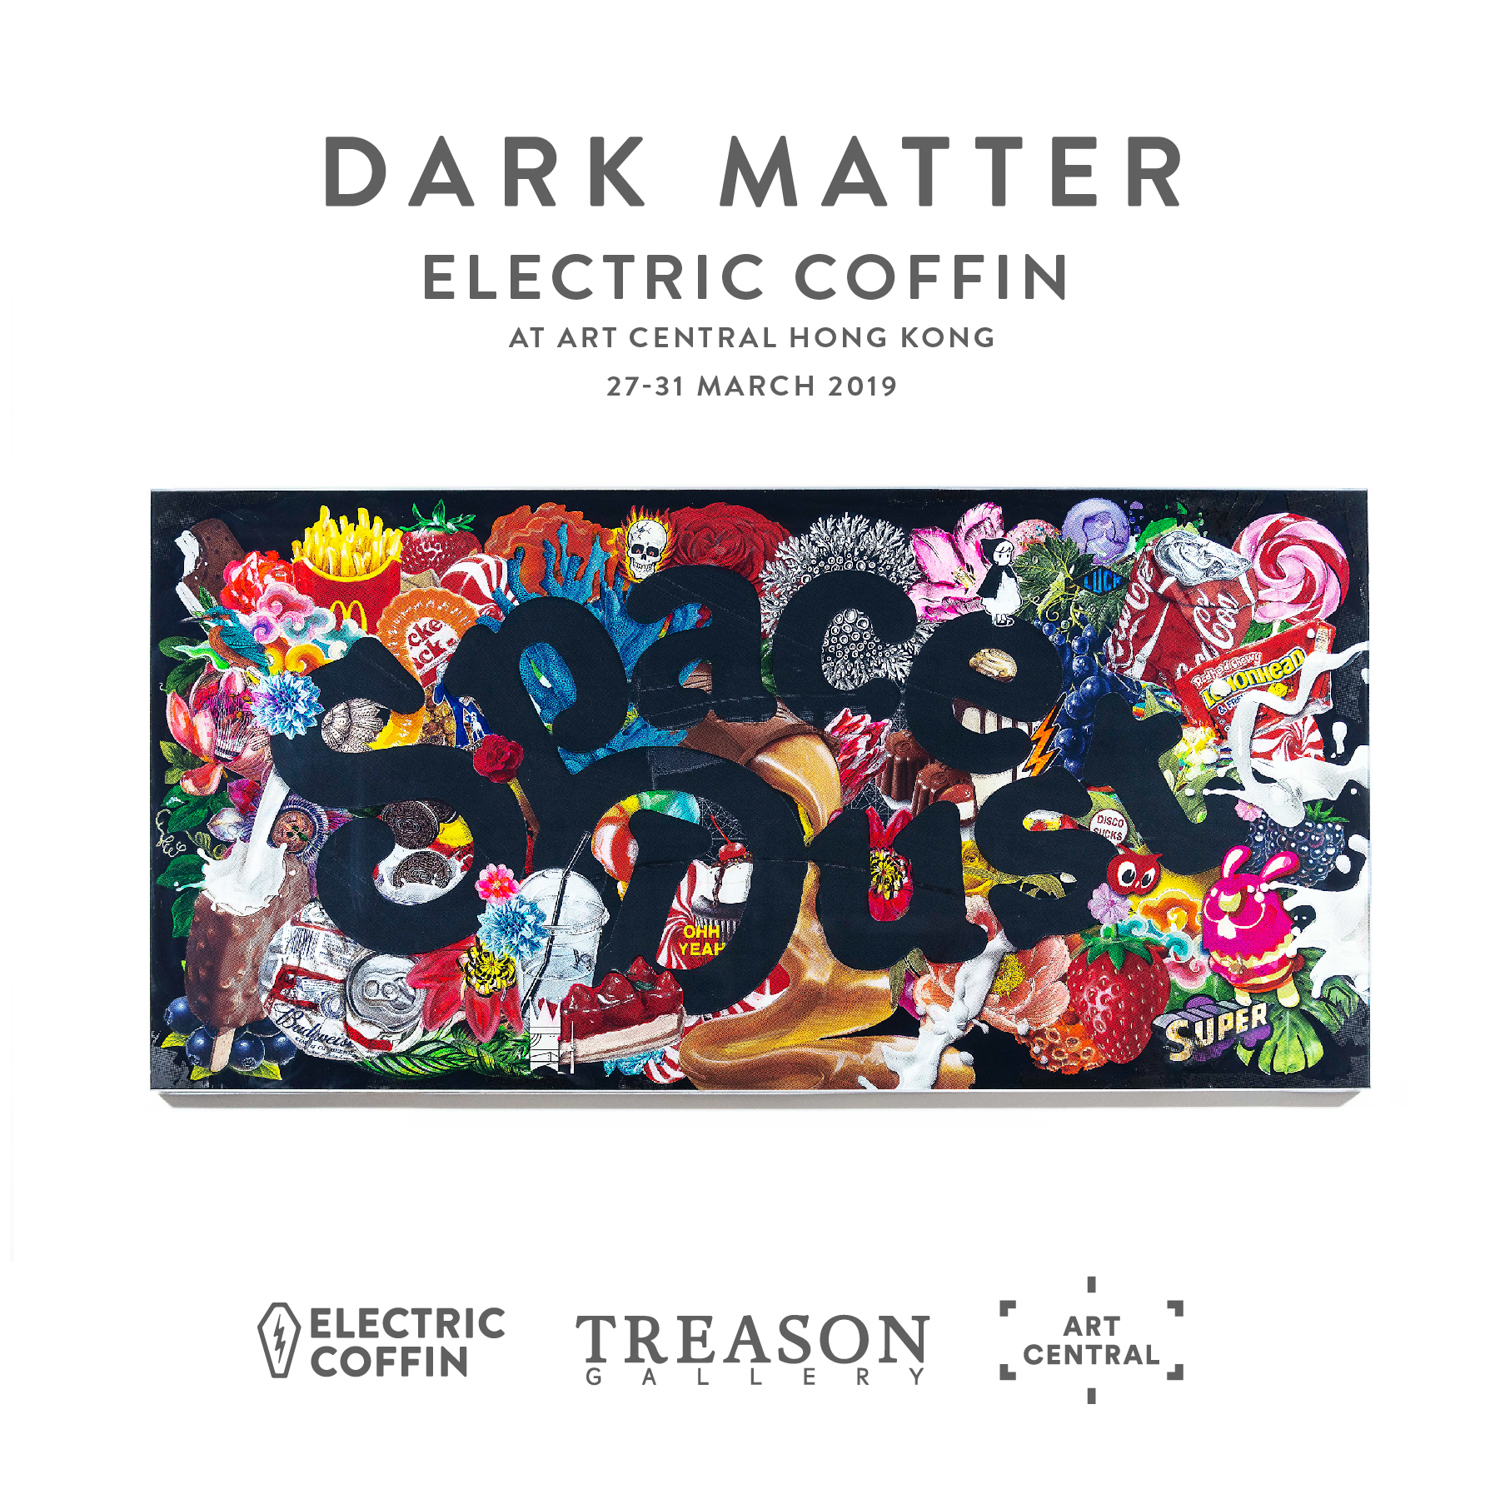 Electric Coffin - Dark Matter - Treason Gallery - Art Central Ho